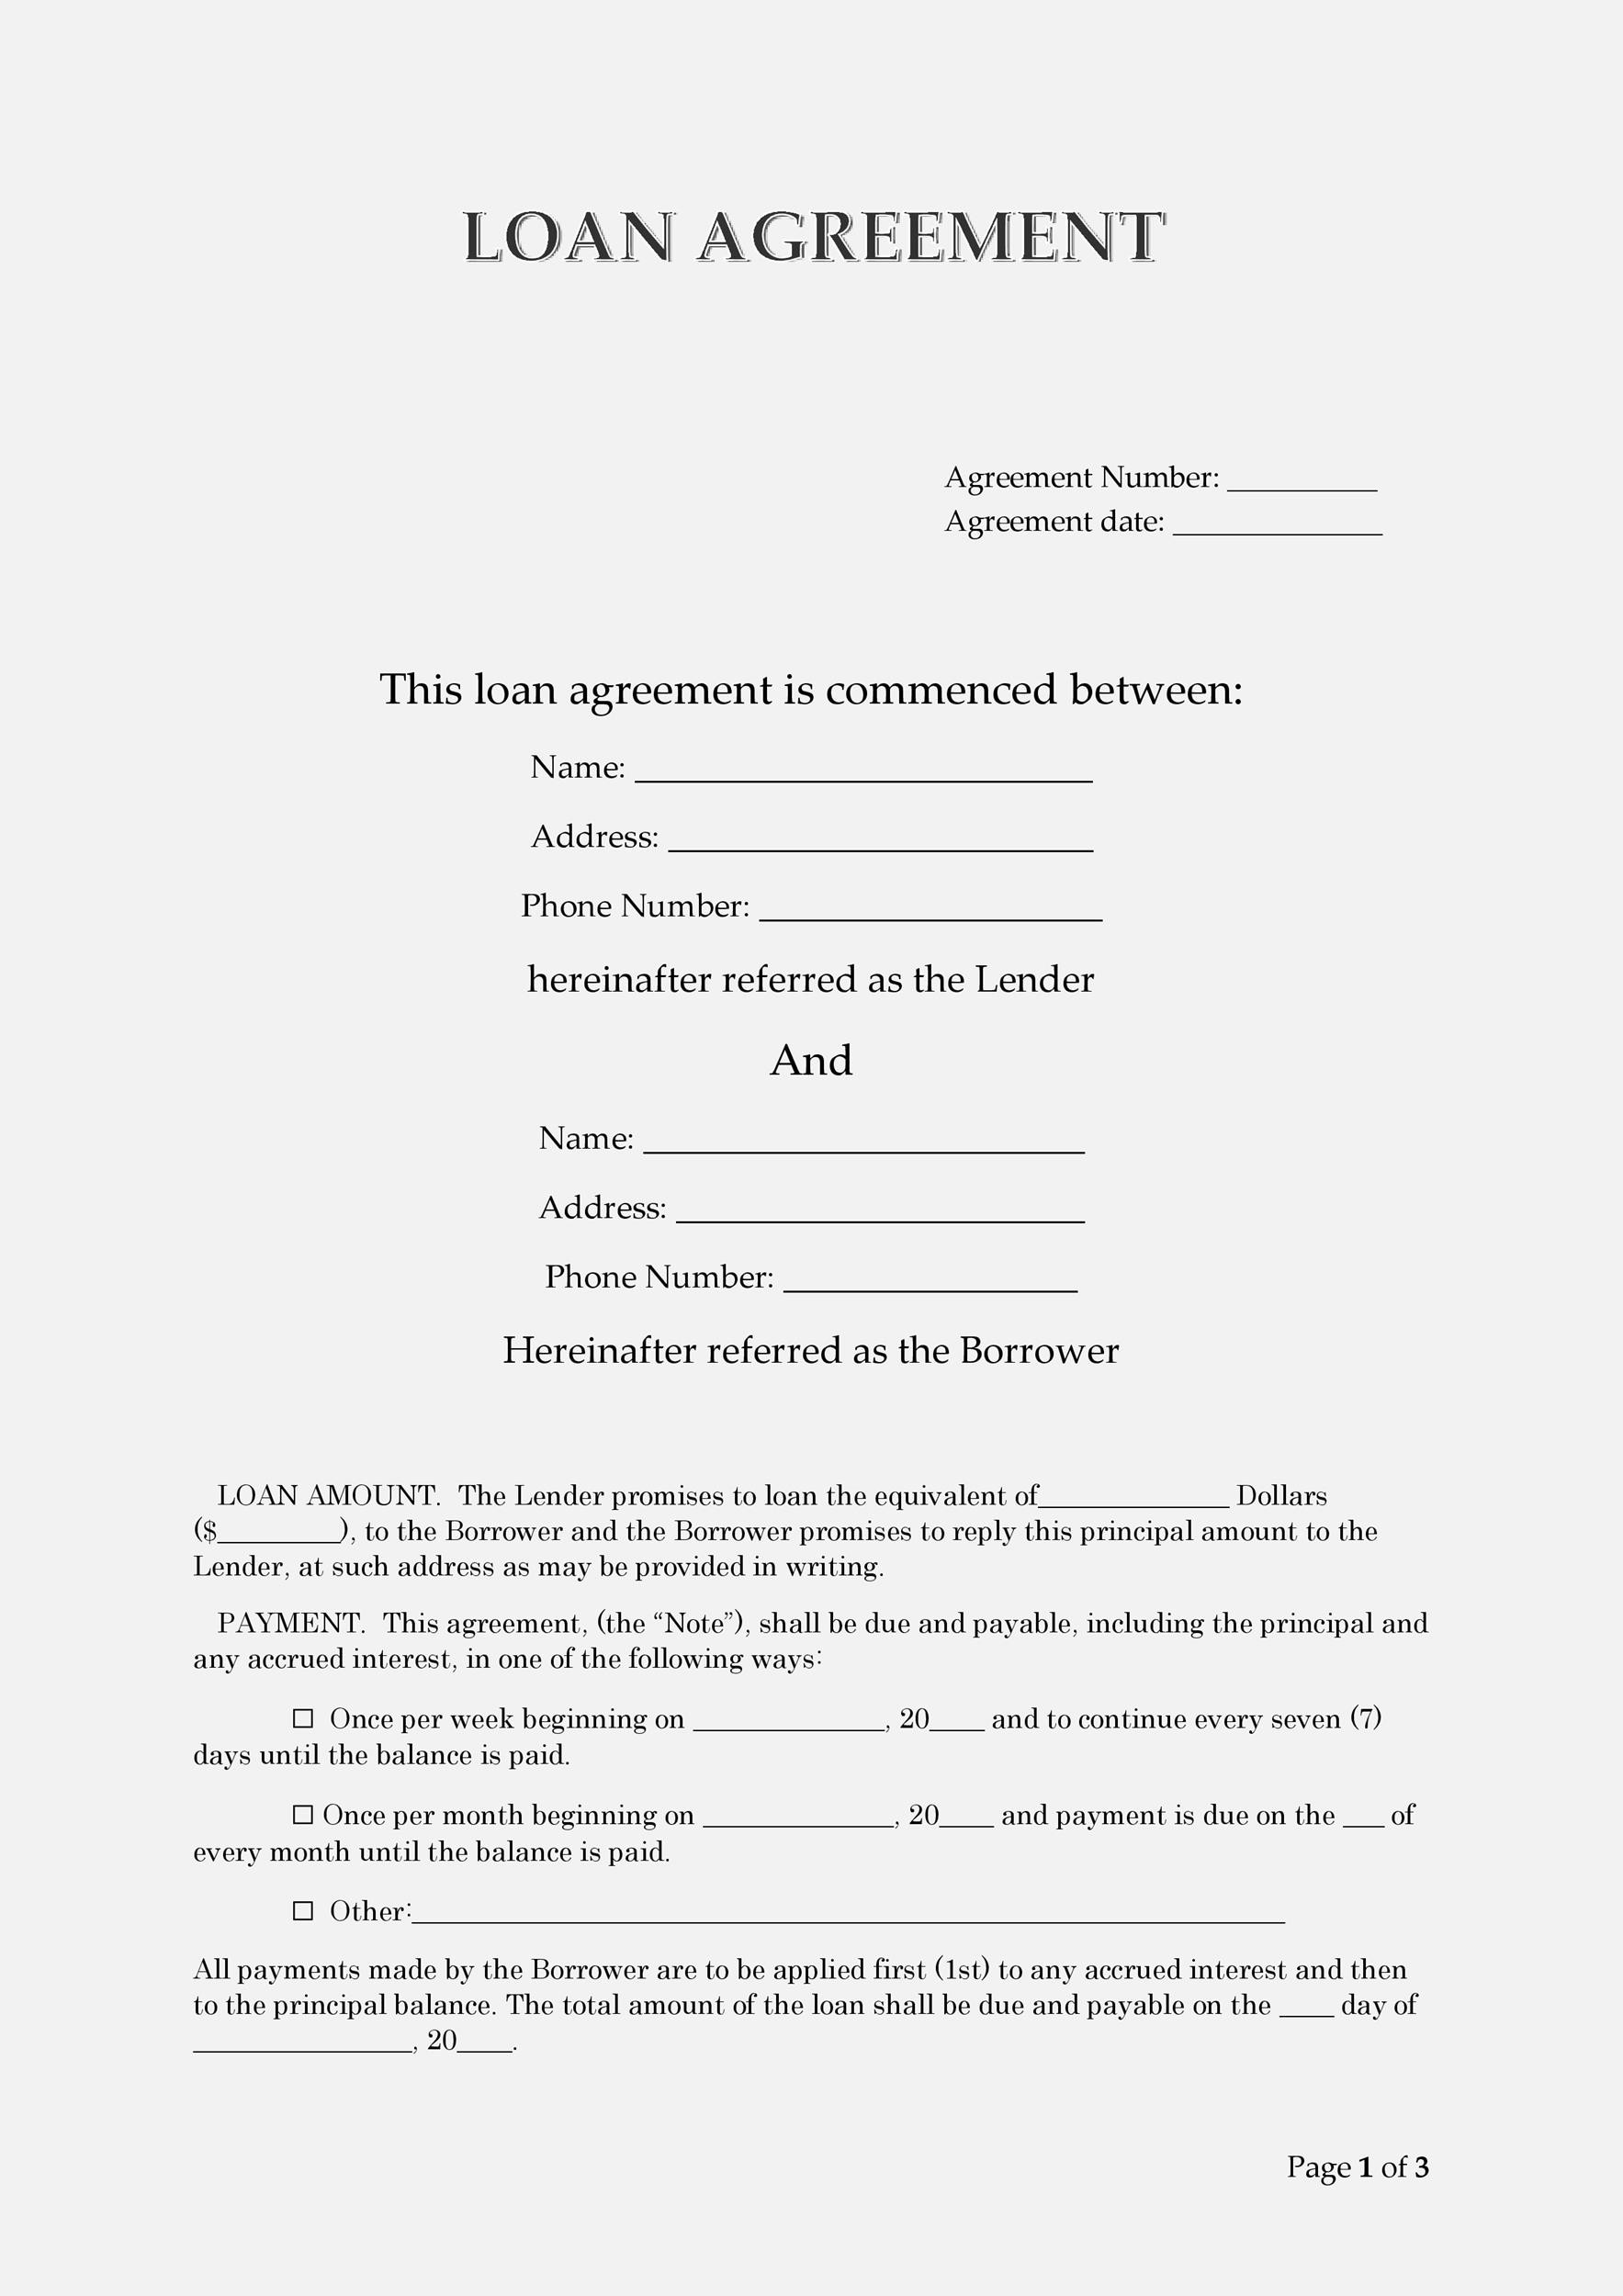 Free loan agreement template 27